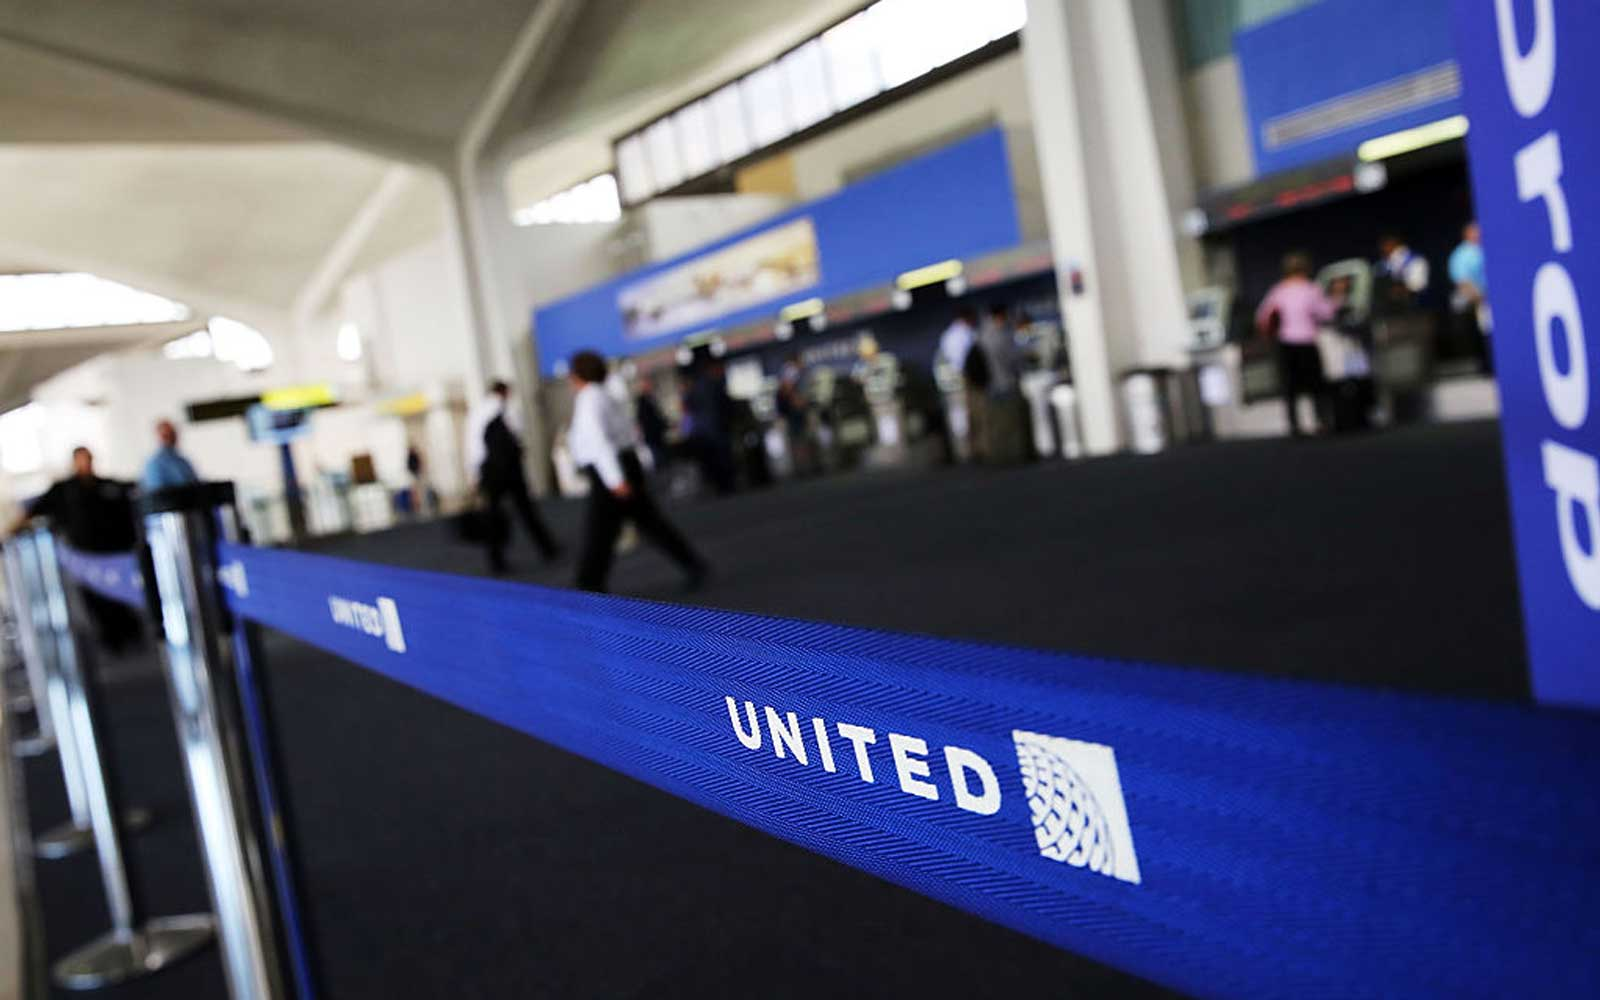 Woman Claims She Was 'Kicked in the Head' by United Airlines Employee